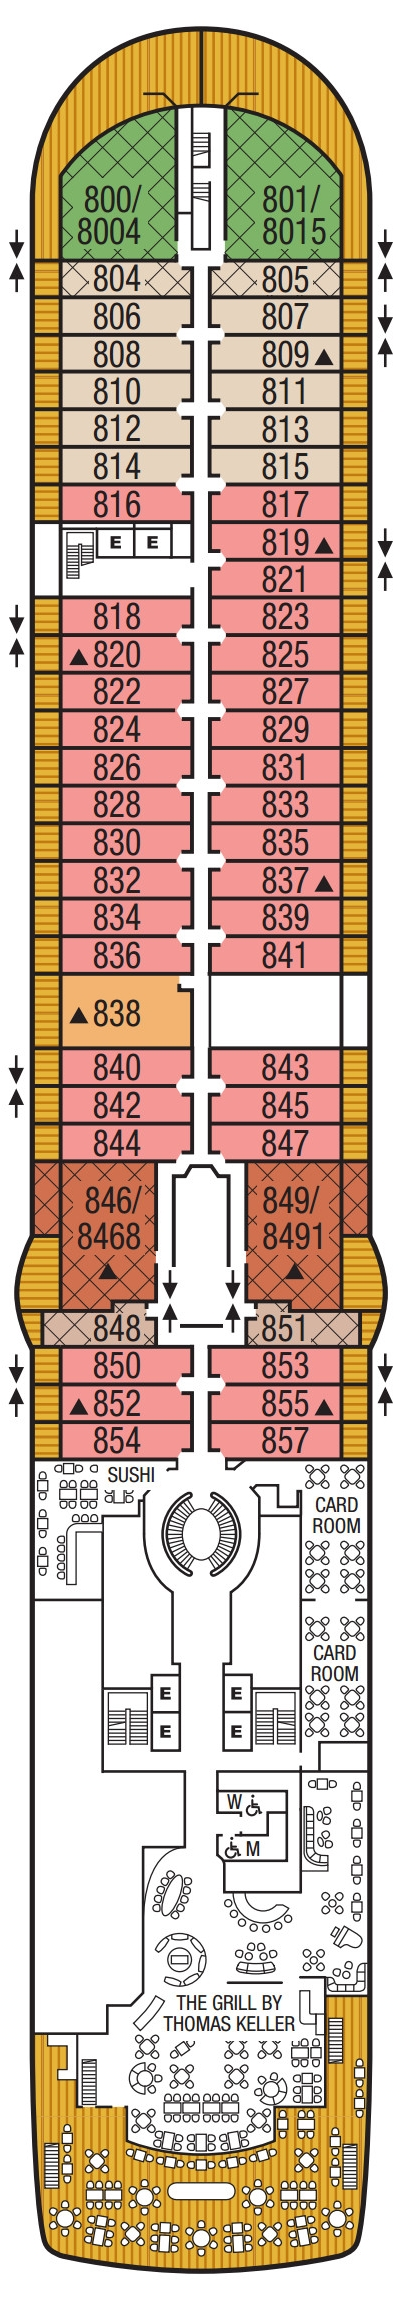 Seabourn Ovation Deck 8 layout